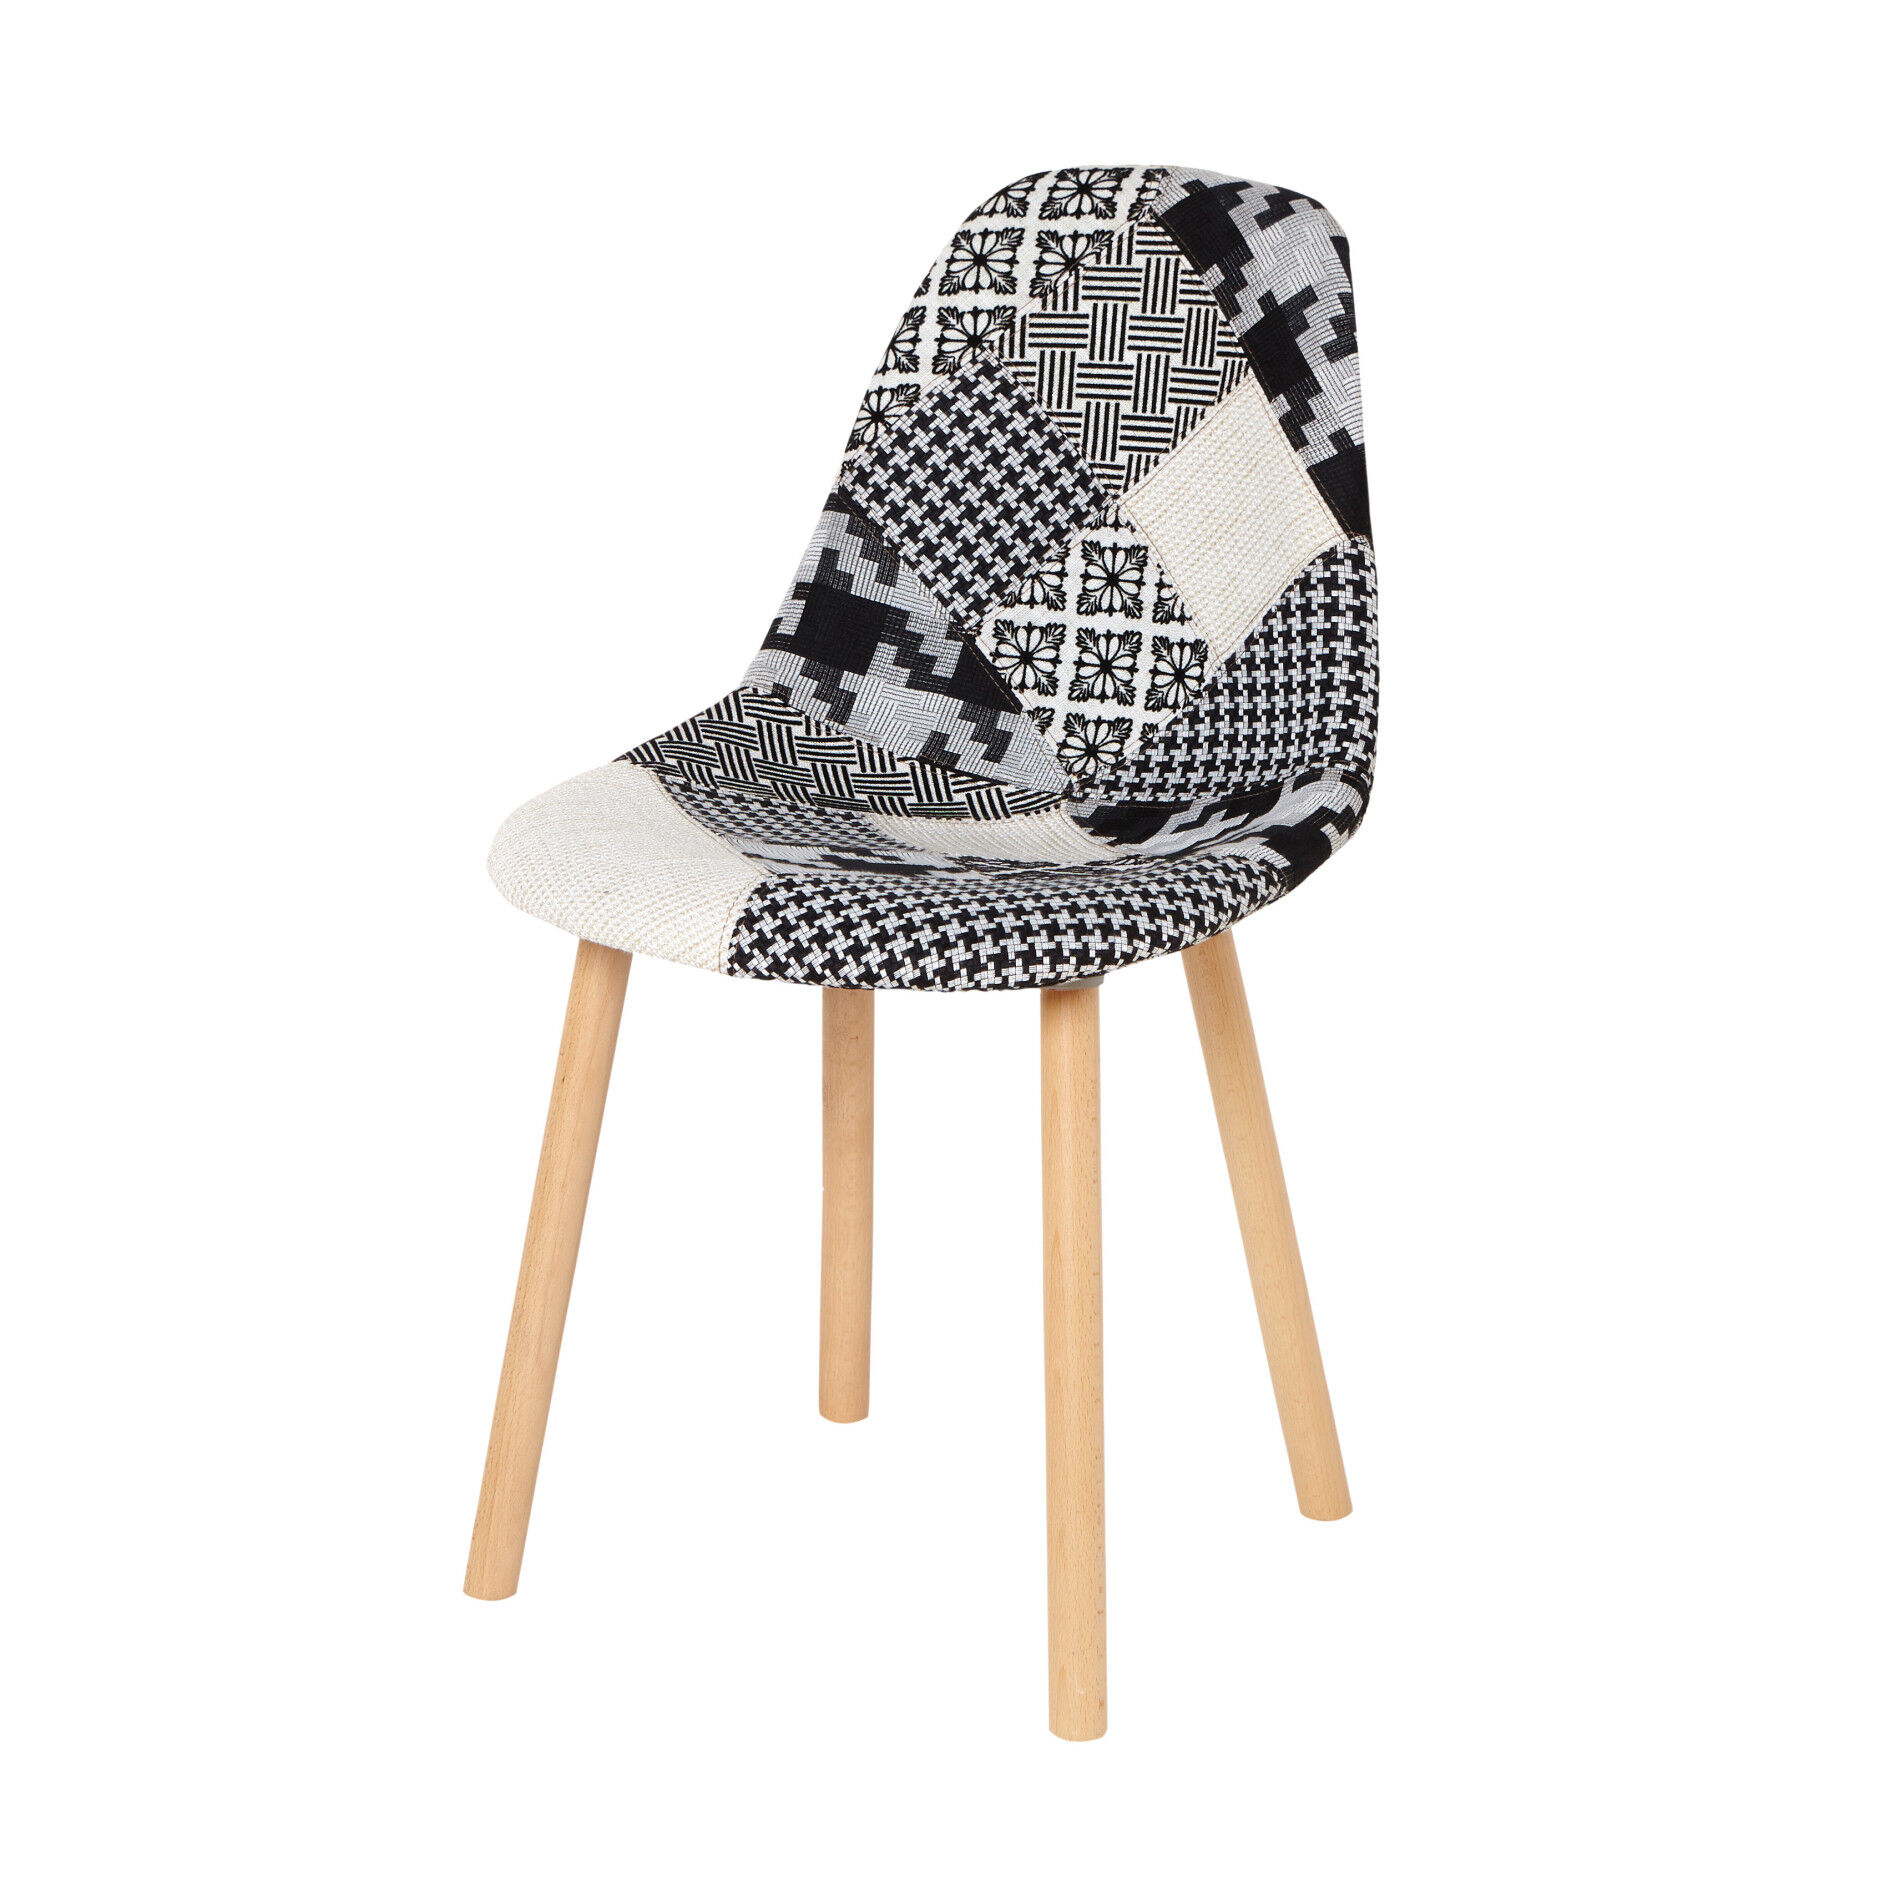 baby height chair evenflo majestic high recall patchwork fabric - coincasa